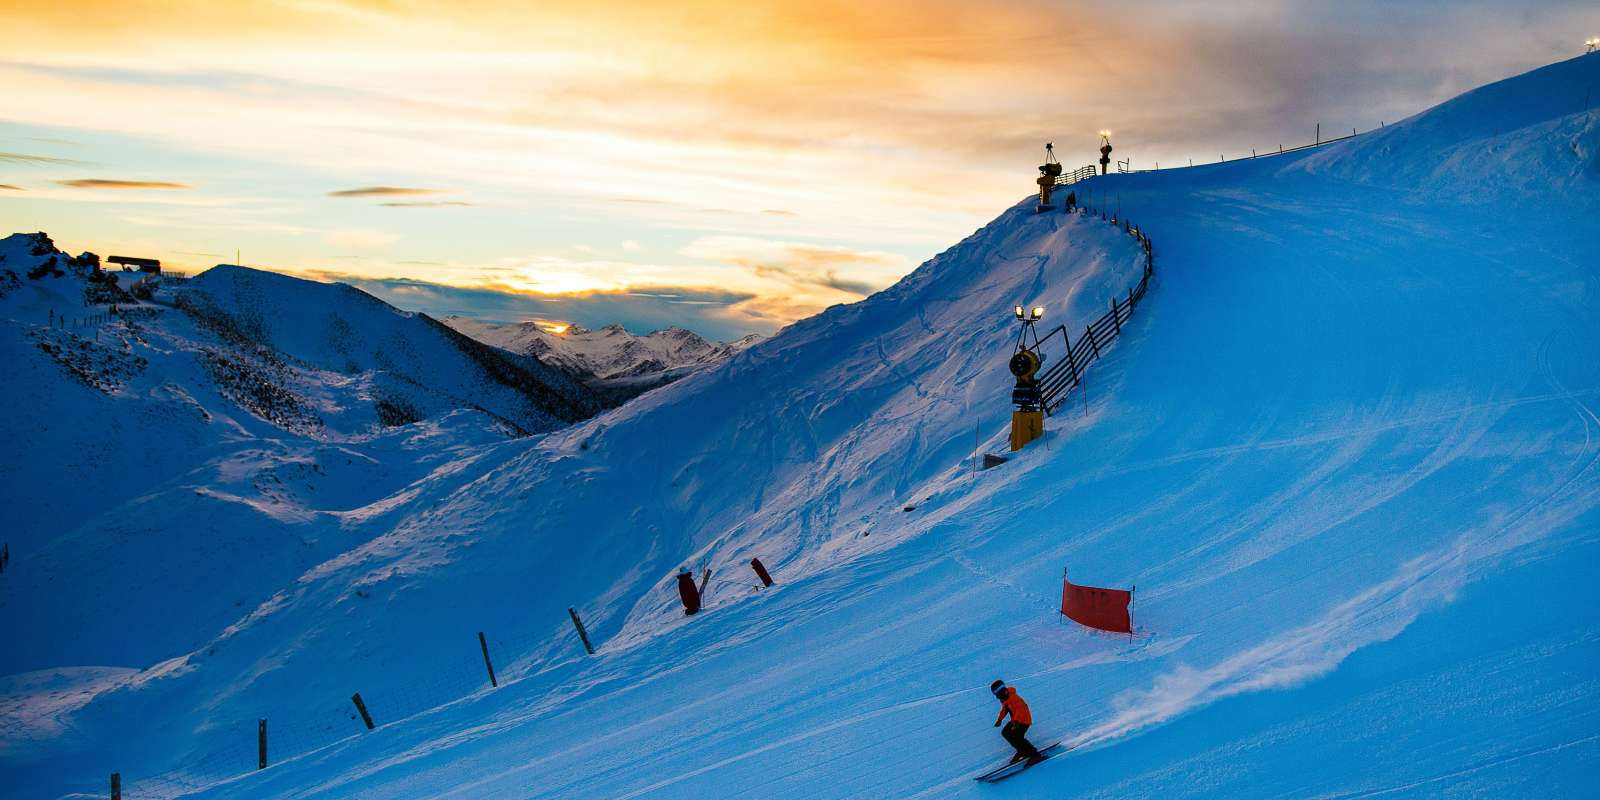 Coronet Peak night ski